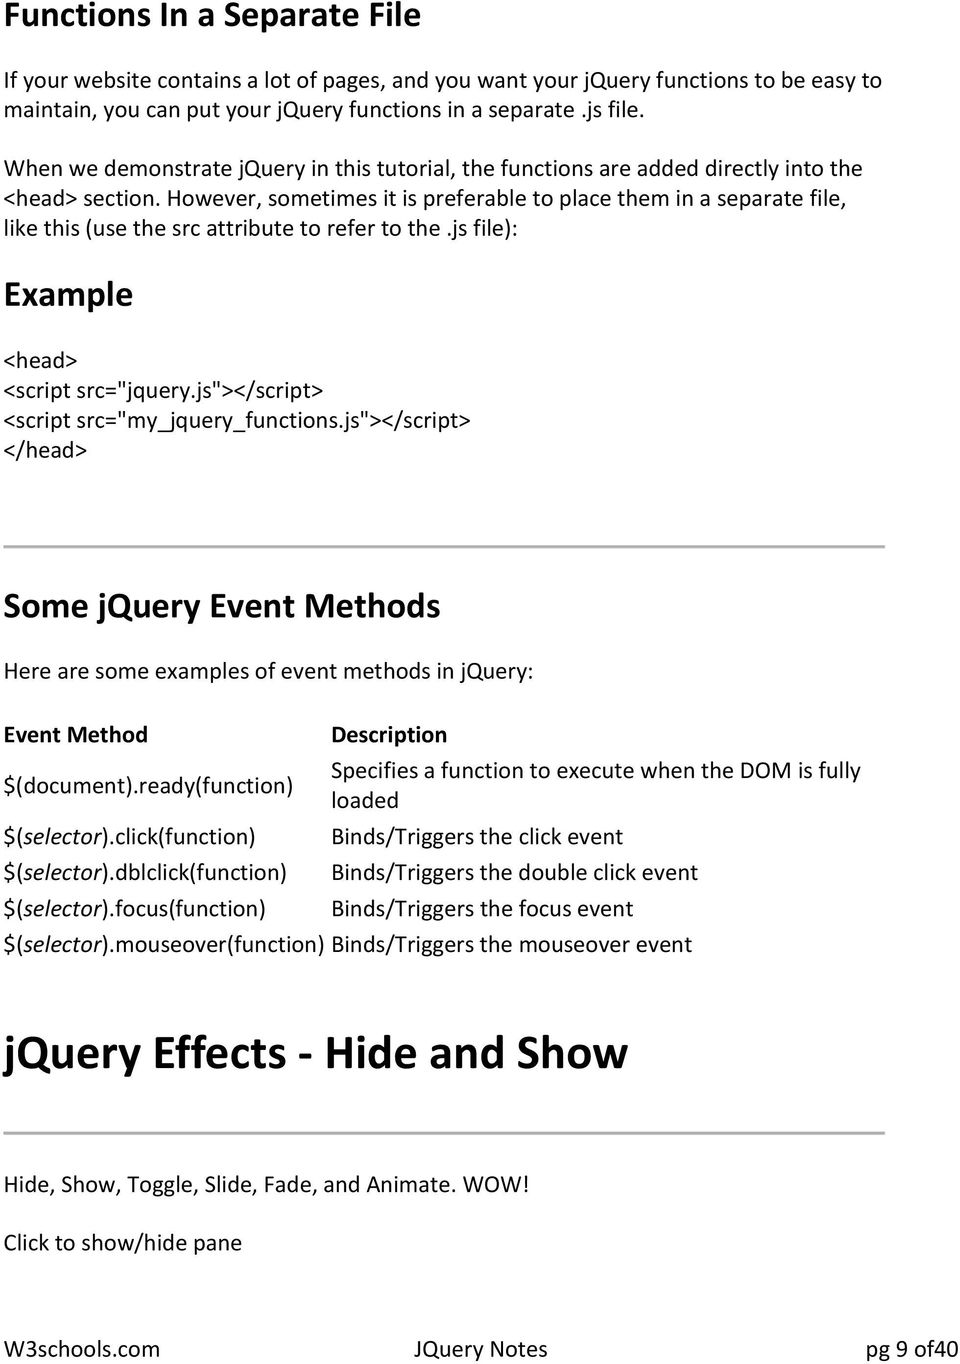 The purpose of jquery is to make it much easier to use